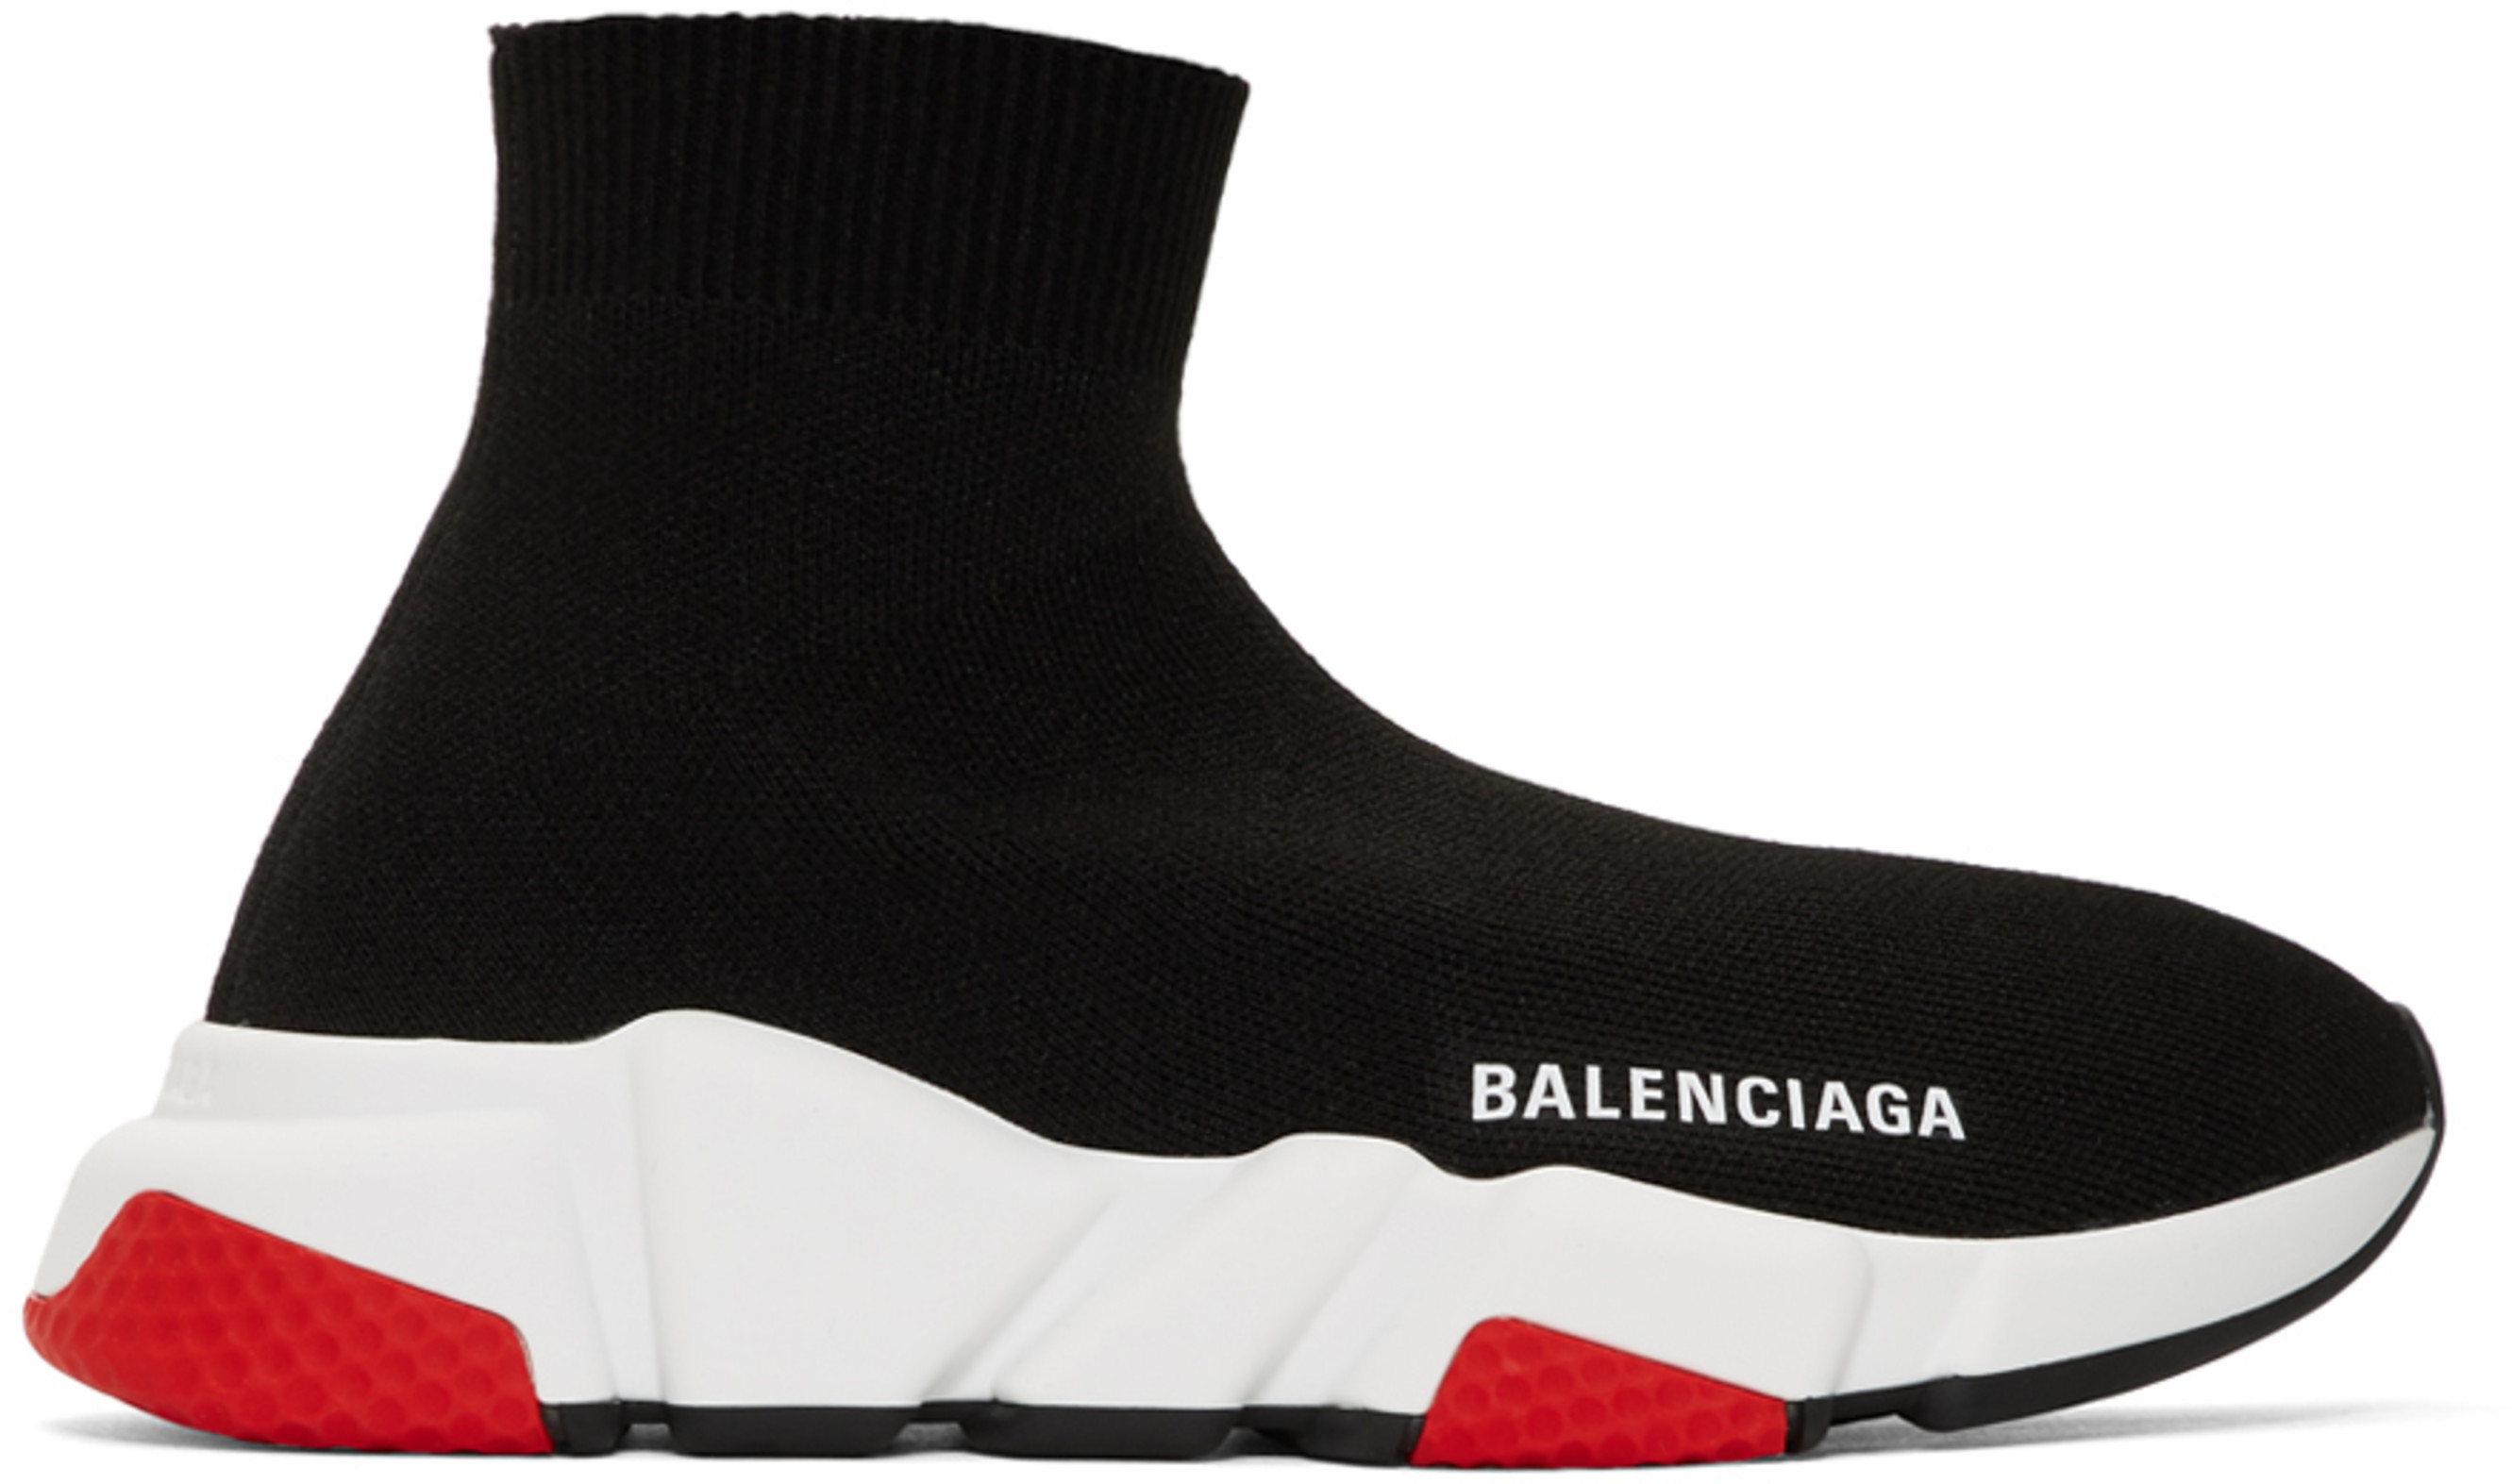 9489235c991a Balenciaga sneakers for Women